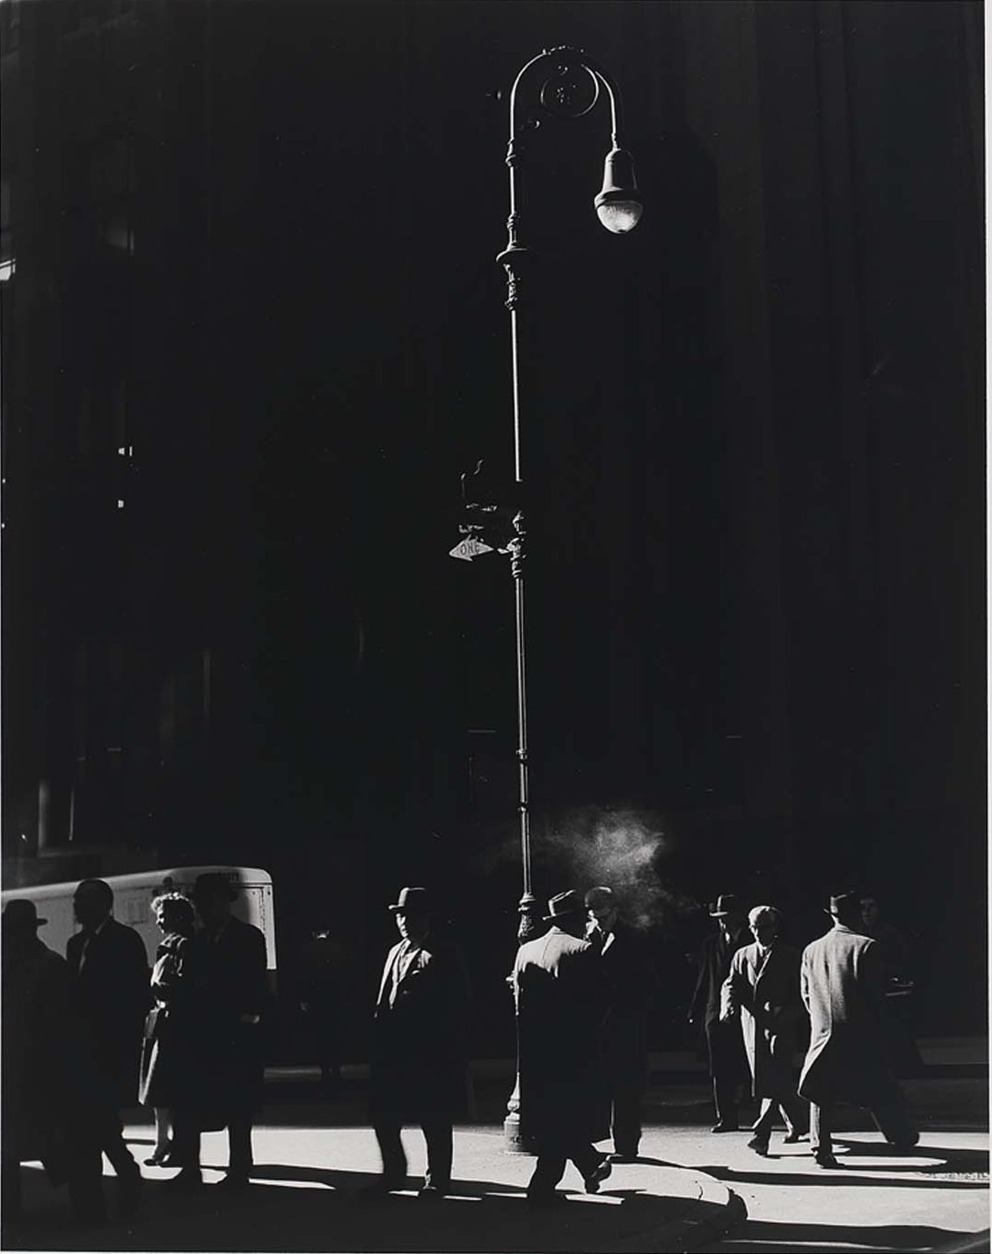 undr:  Todd Webb Broadway at Wall Street, New York, 1959